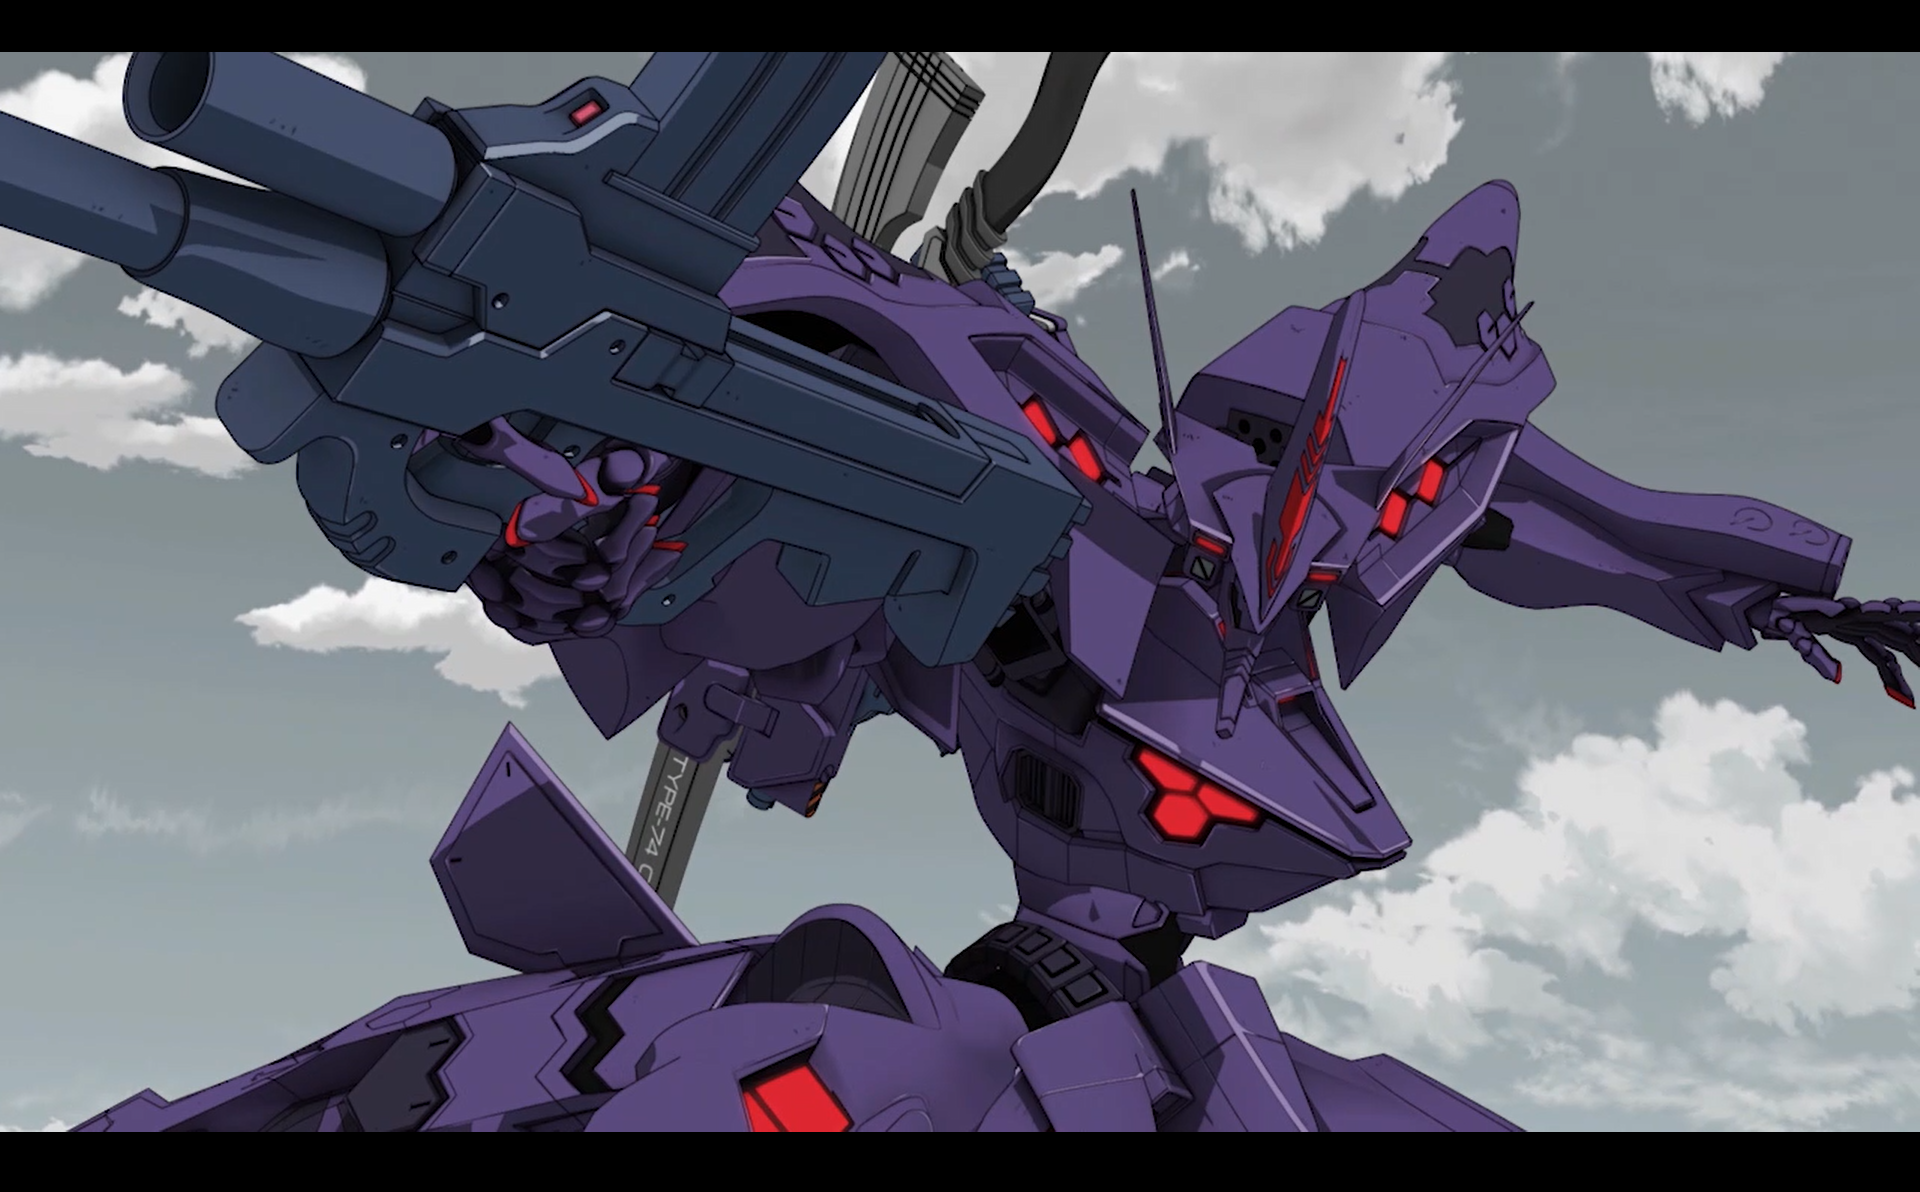 Check out these trailers for our upcoming games, and the Muv-Luv Alternative anime!